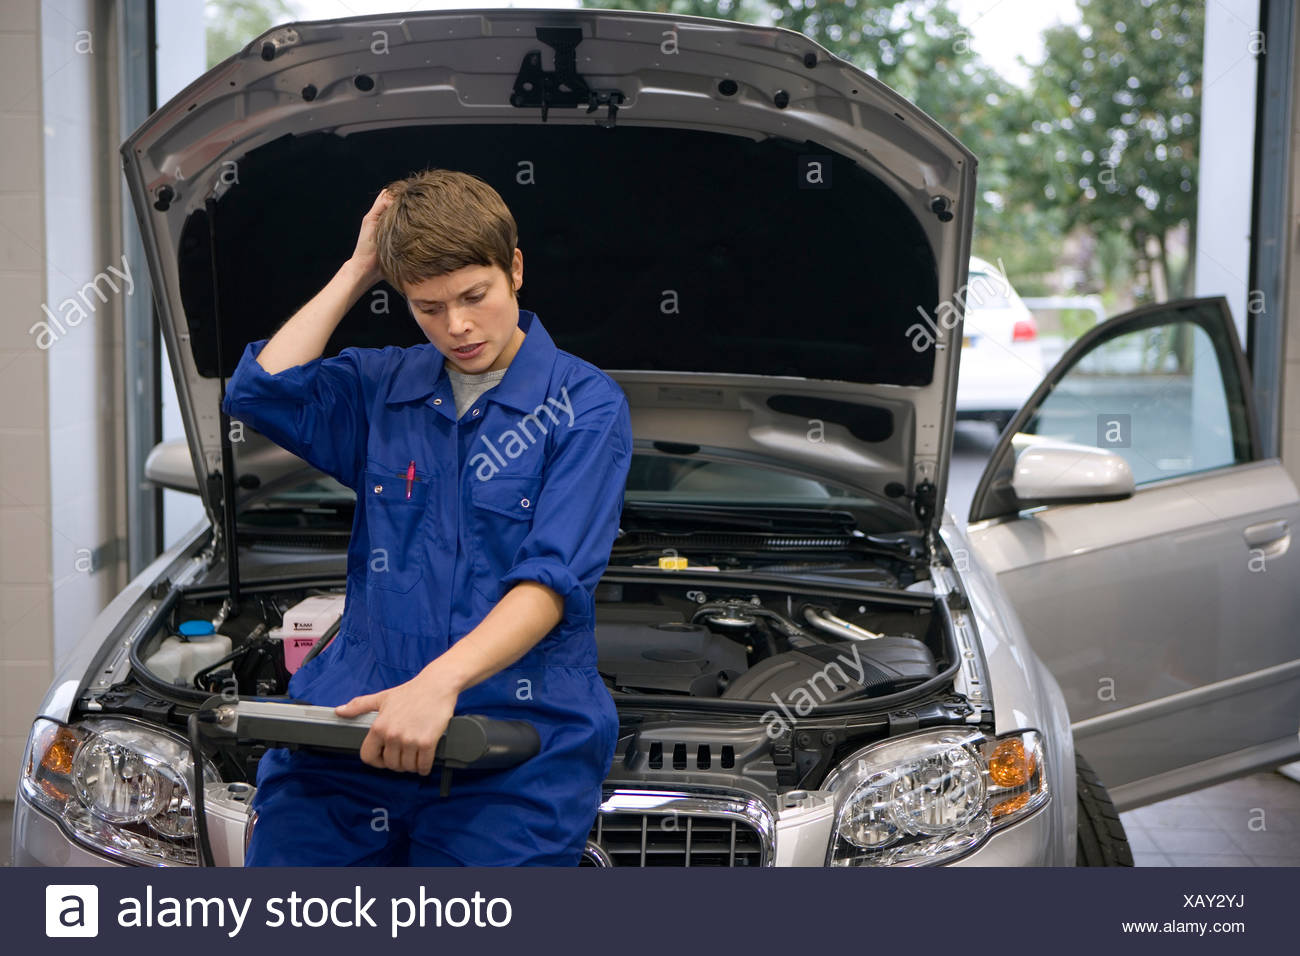 Female mechanic looking at diagnostic computer by open bonnet of car, hand to head Stock Photo